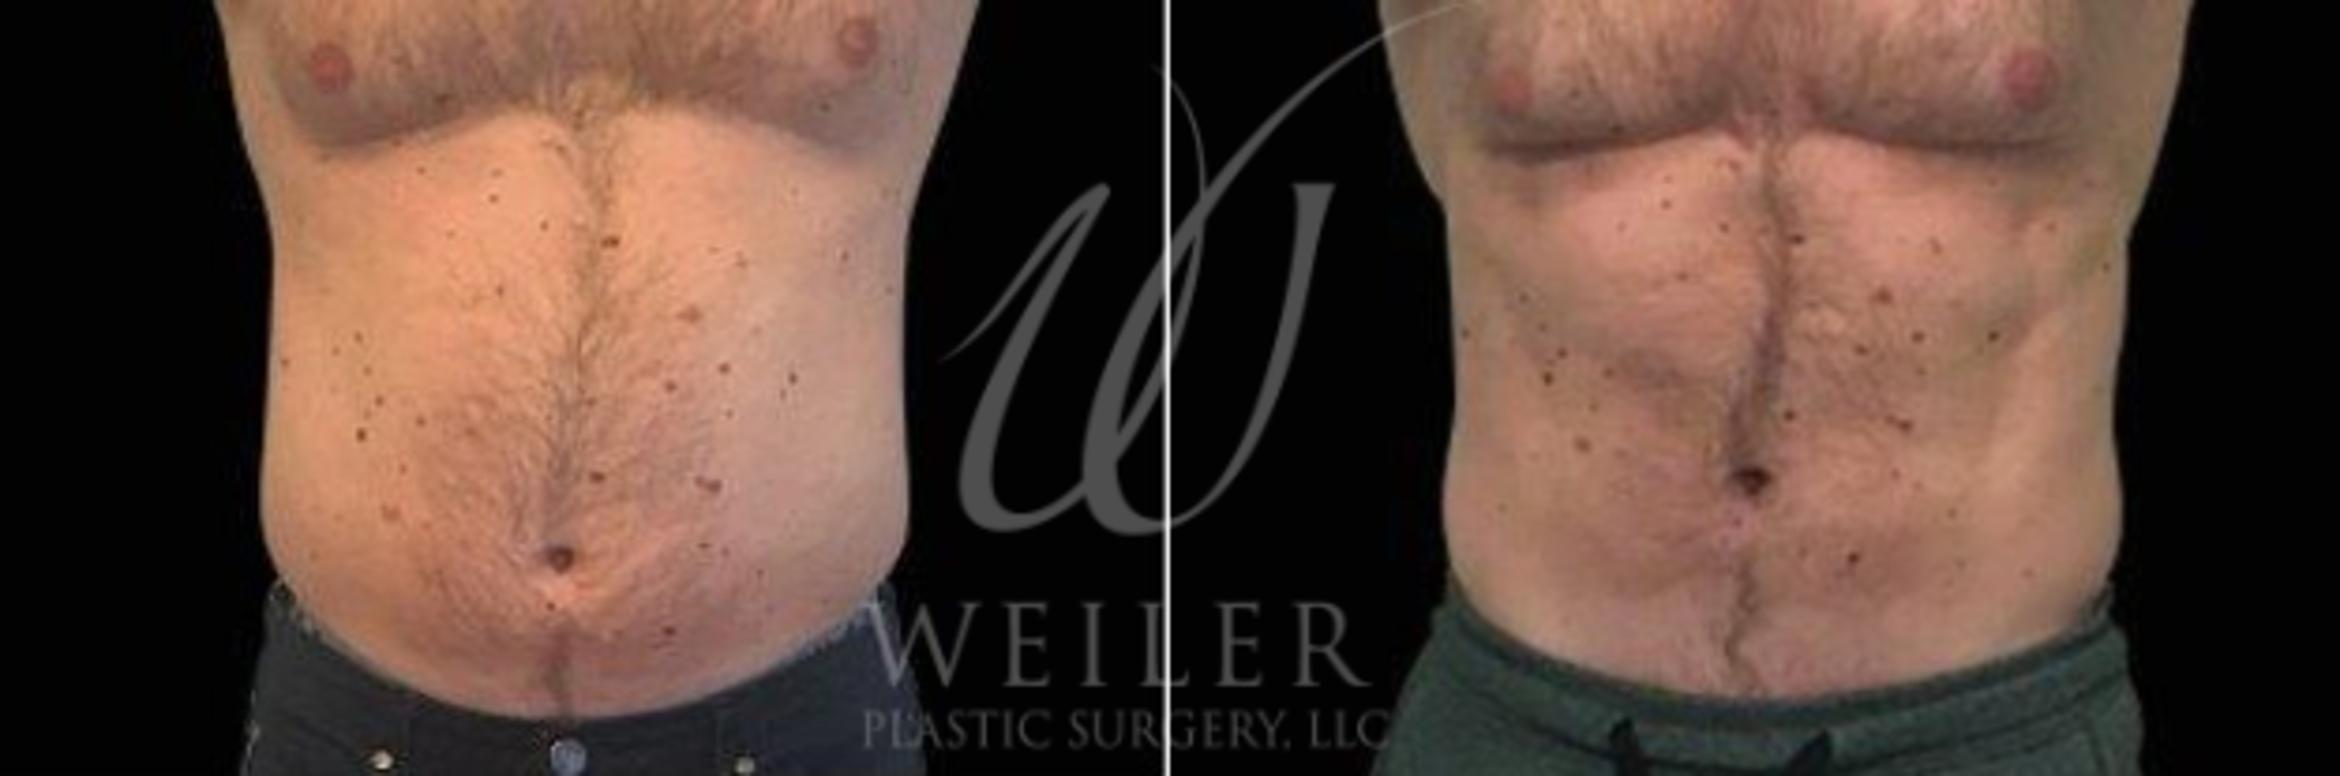 EMSculpt Before & After Photo | Baton Rouge, Louisiana | Weiler Plastic Surgery